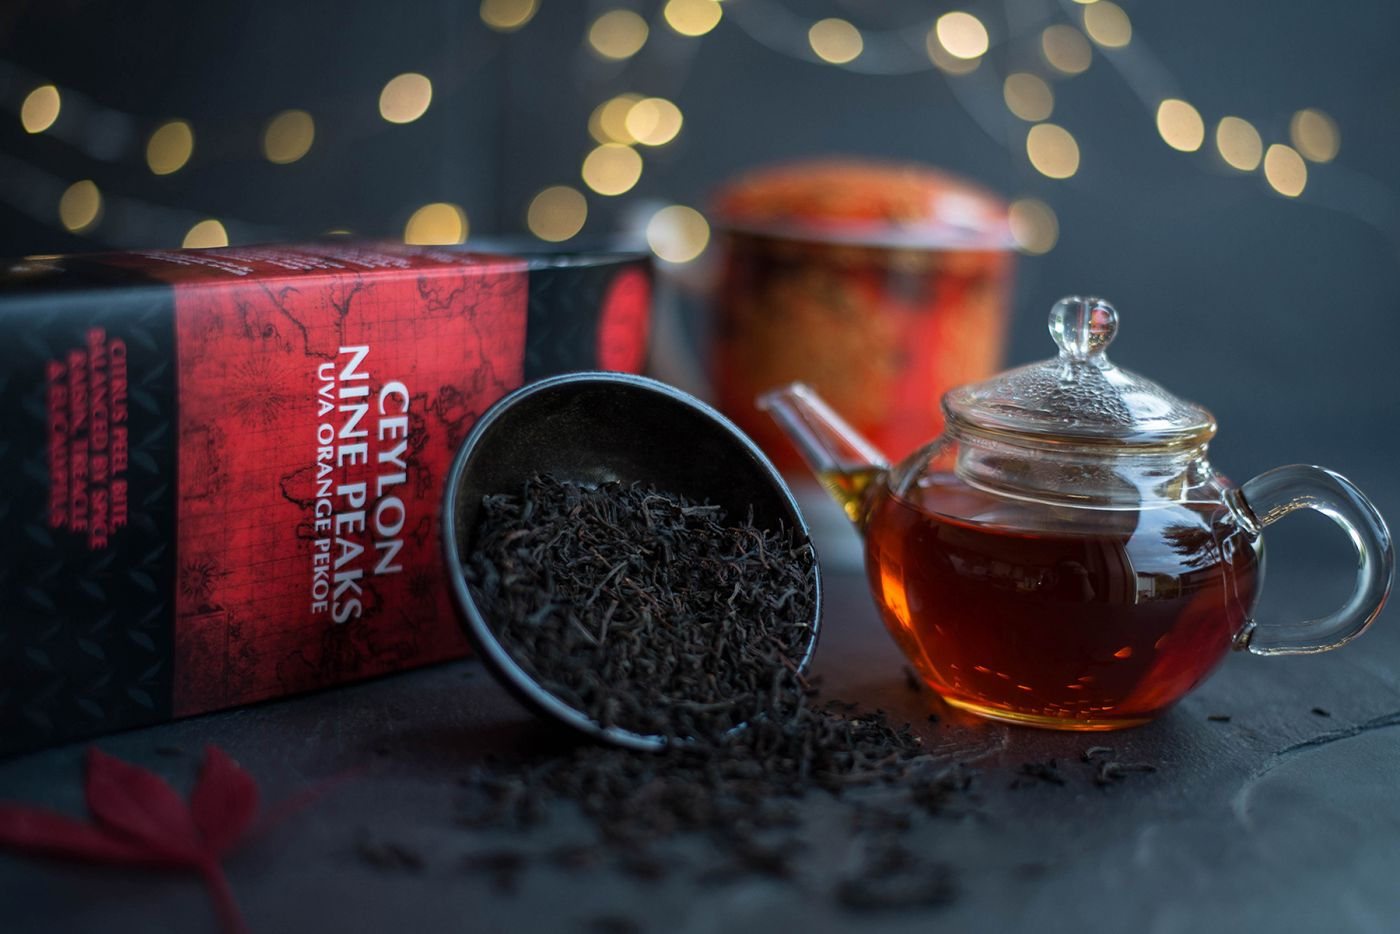 Ceylon Nine Peaks Orange Pekoe Black Tea